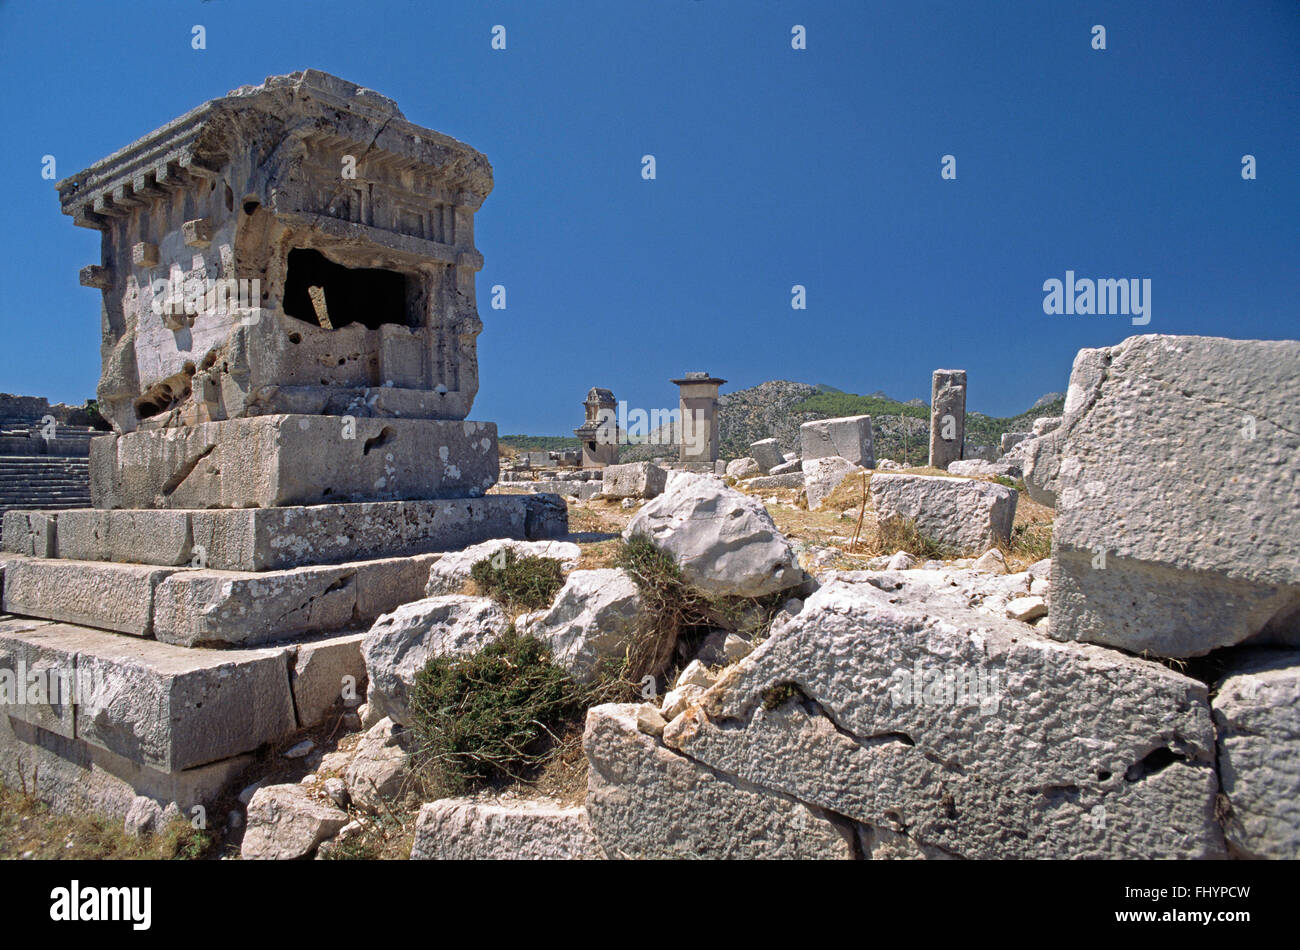 Tomb at XANTHOS (LYCIA'S ancient capital dating back to the 5th Cent. BC) - TURKEY - Stock Image